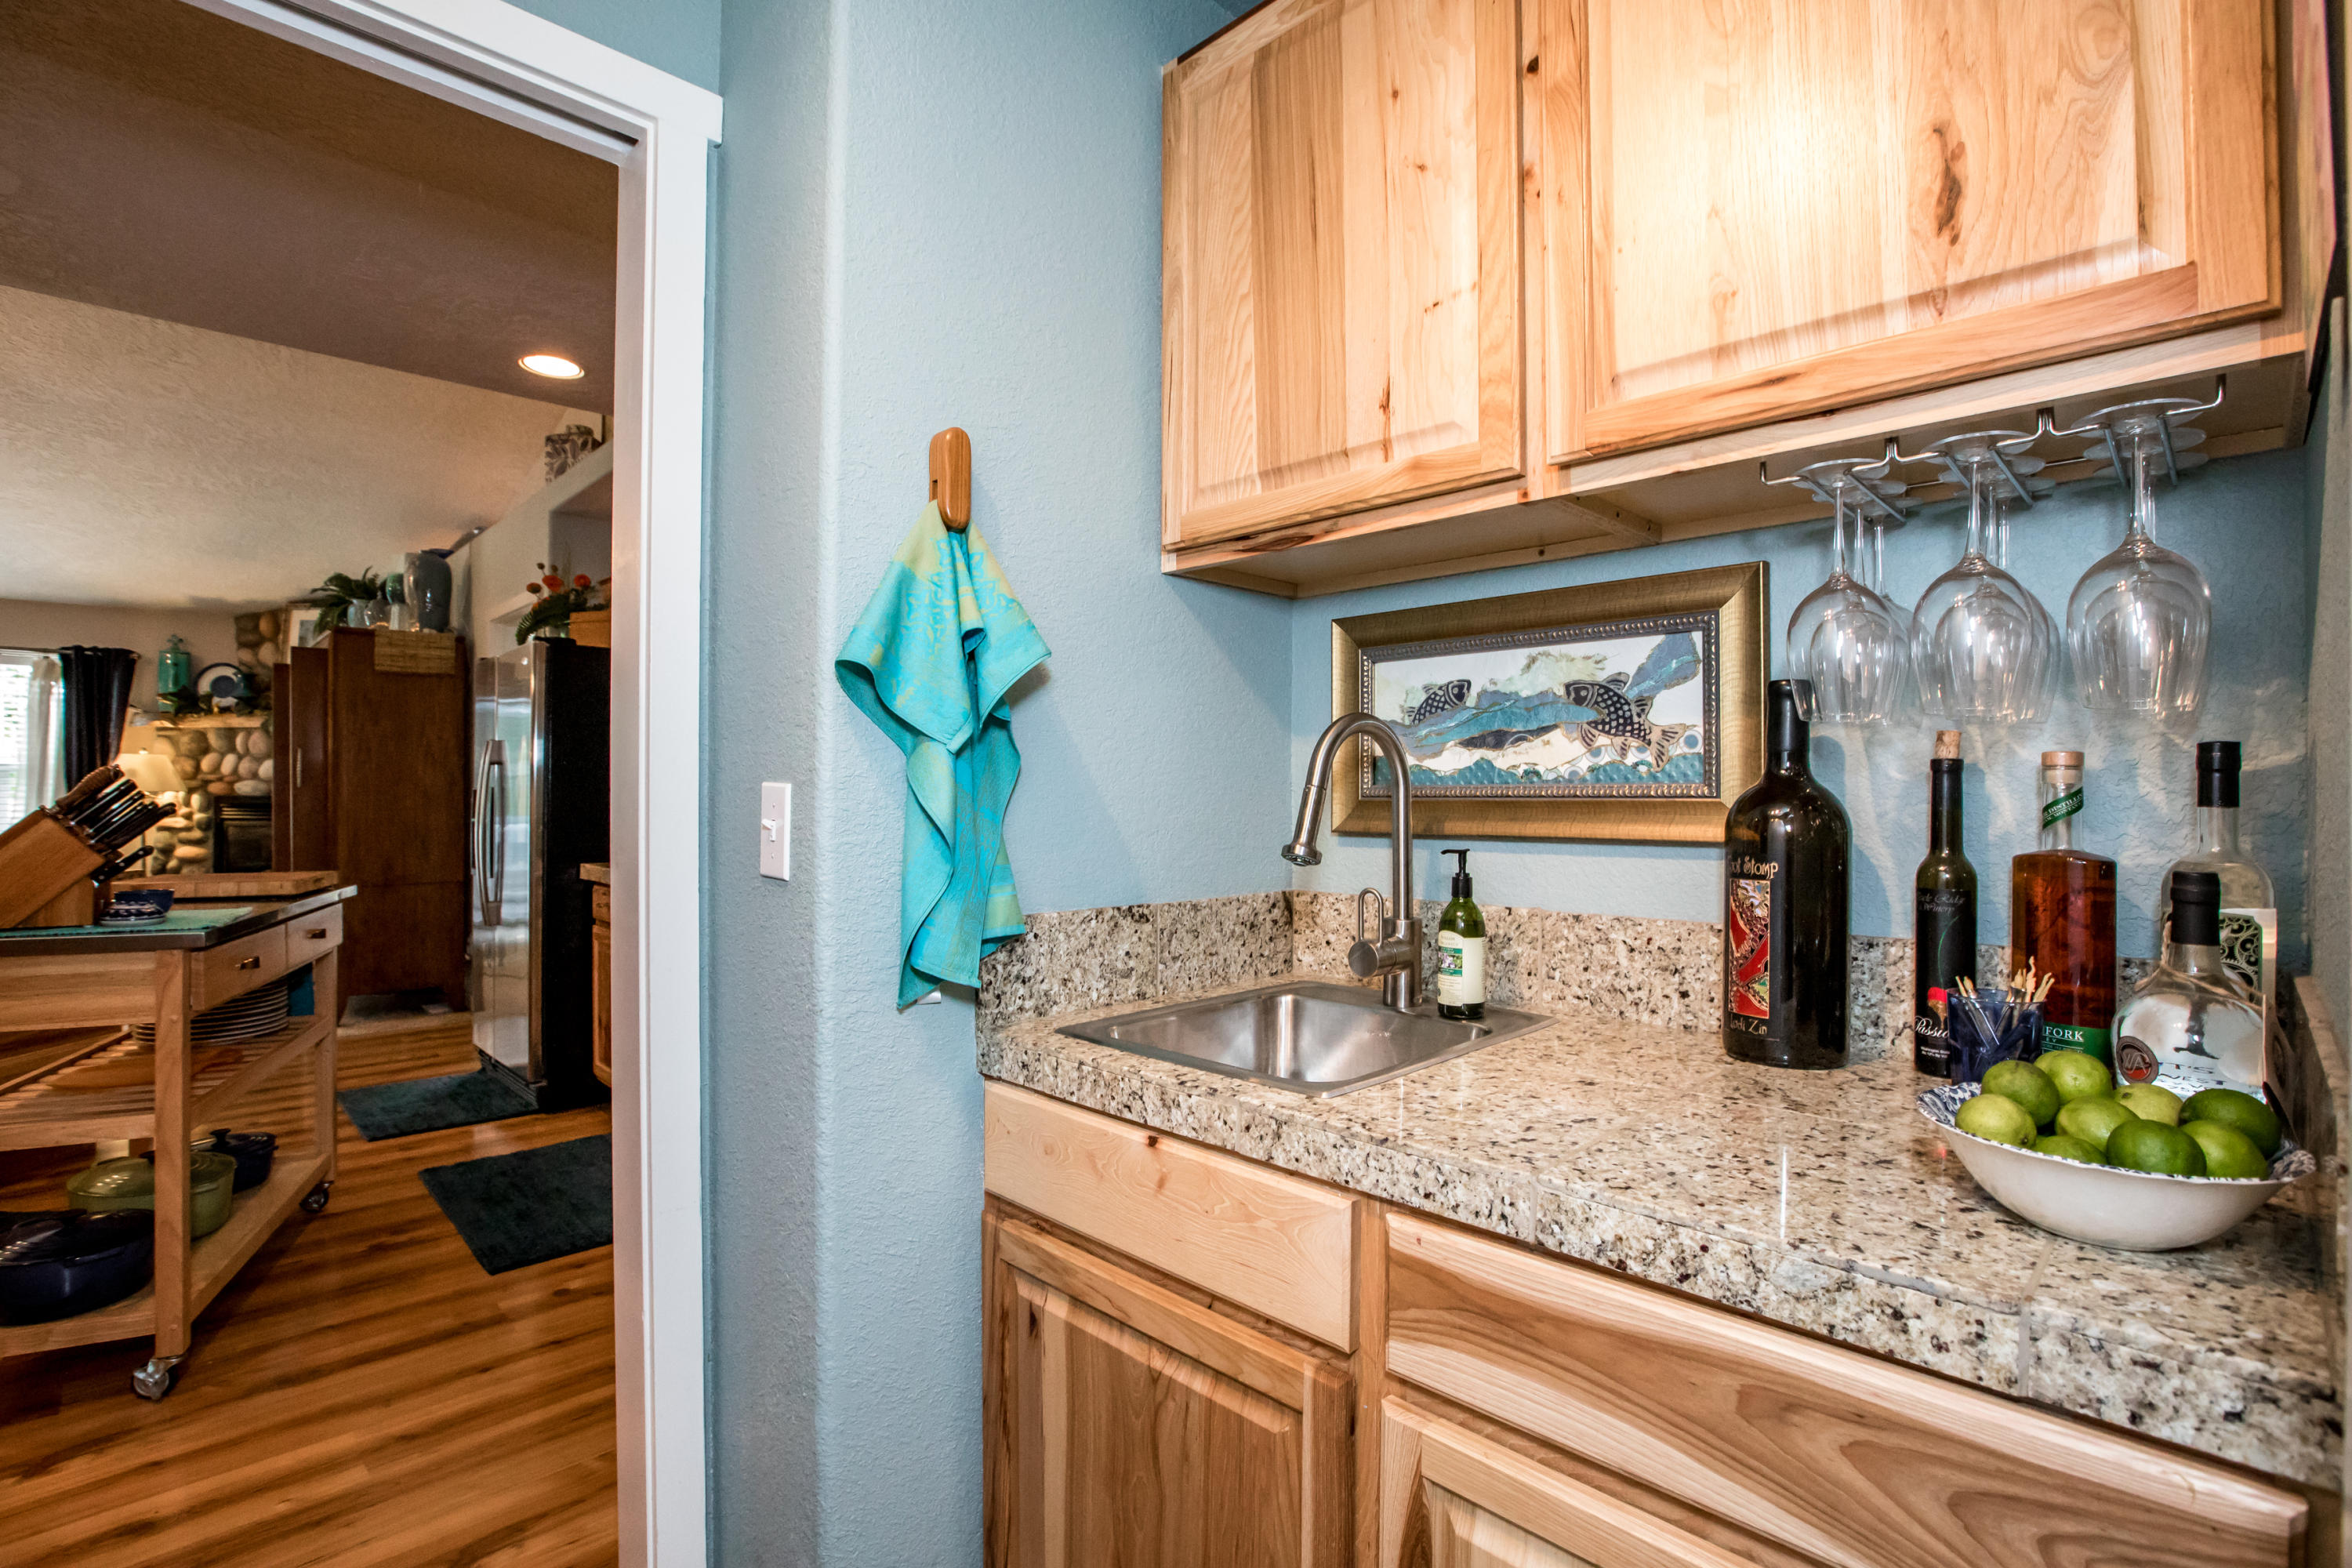 Home for Sale at 146 Aurich Avenue in Kalispell, Montana for ...